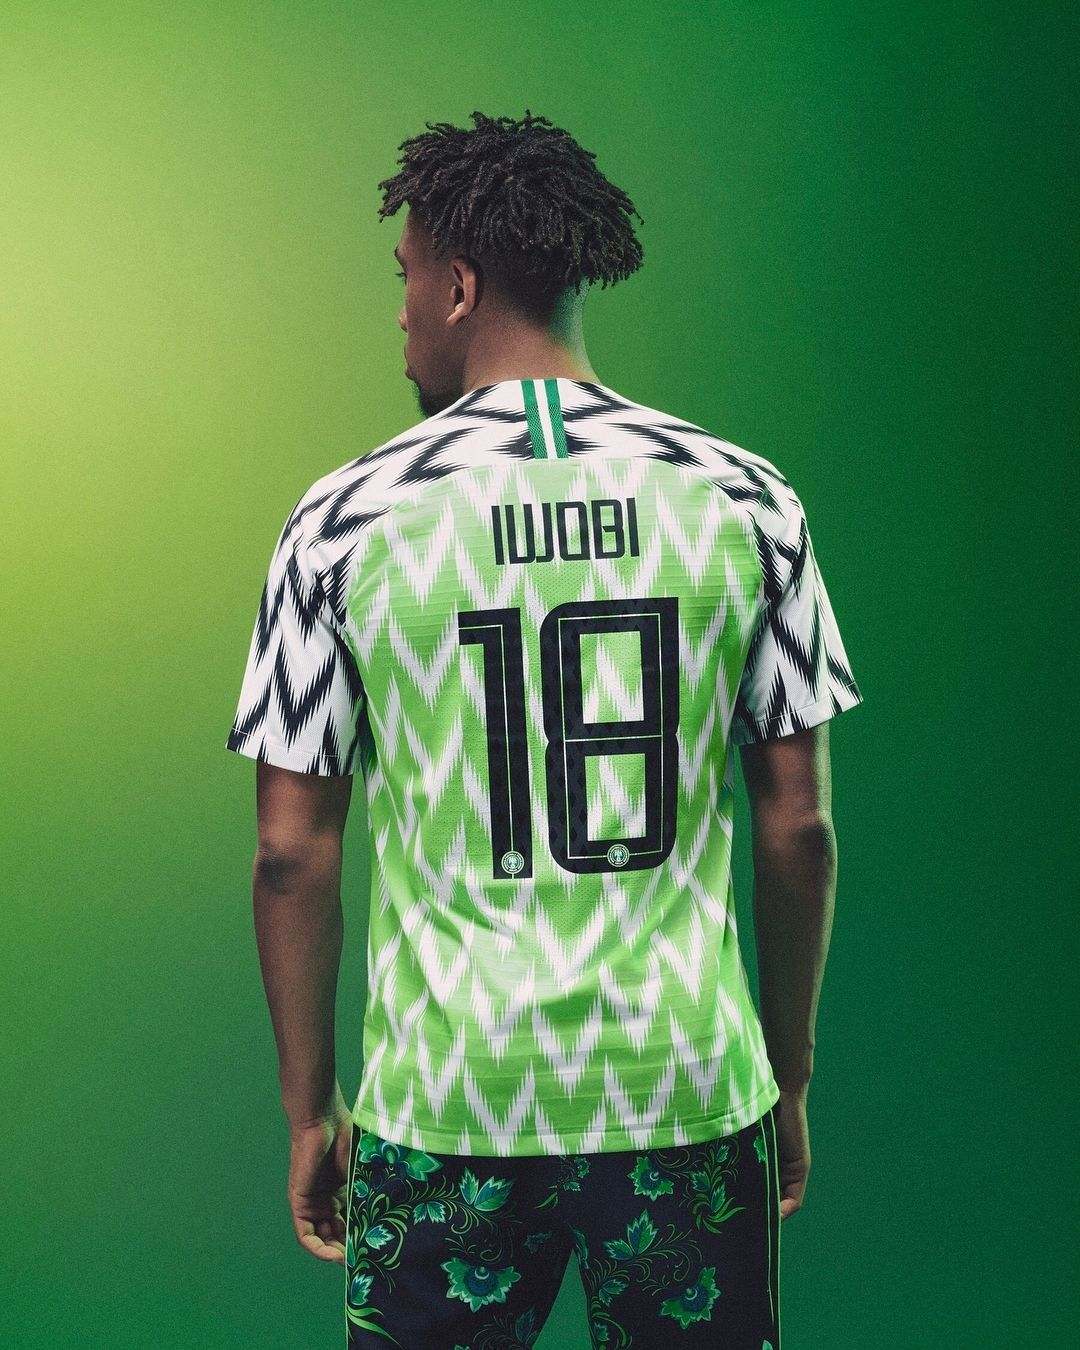 The Nigeria National Team Collection Nike Nikefootball Naija Football Nikesoccer Supereagles World Cup Kits Marathon Shirts Football Fashion